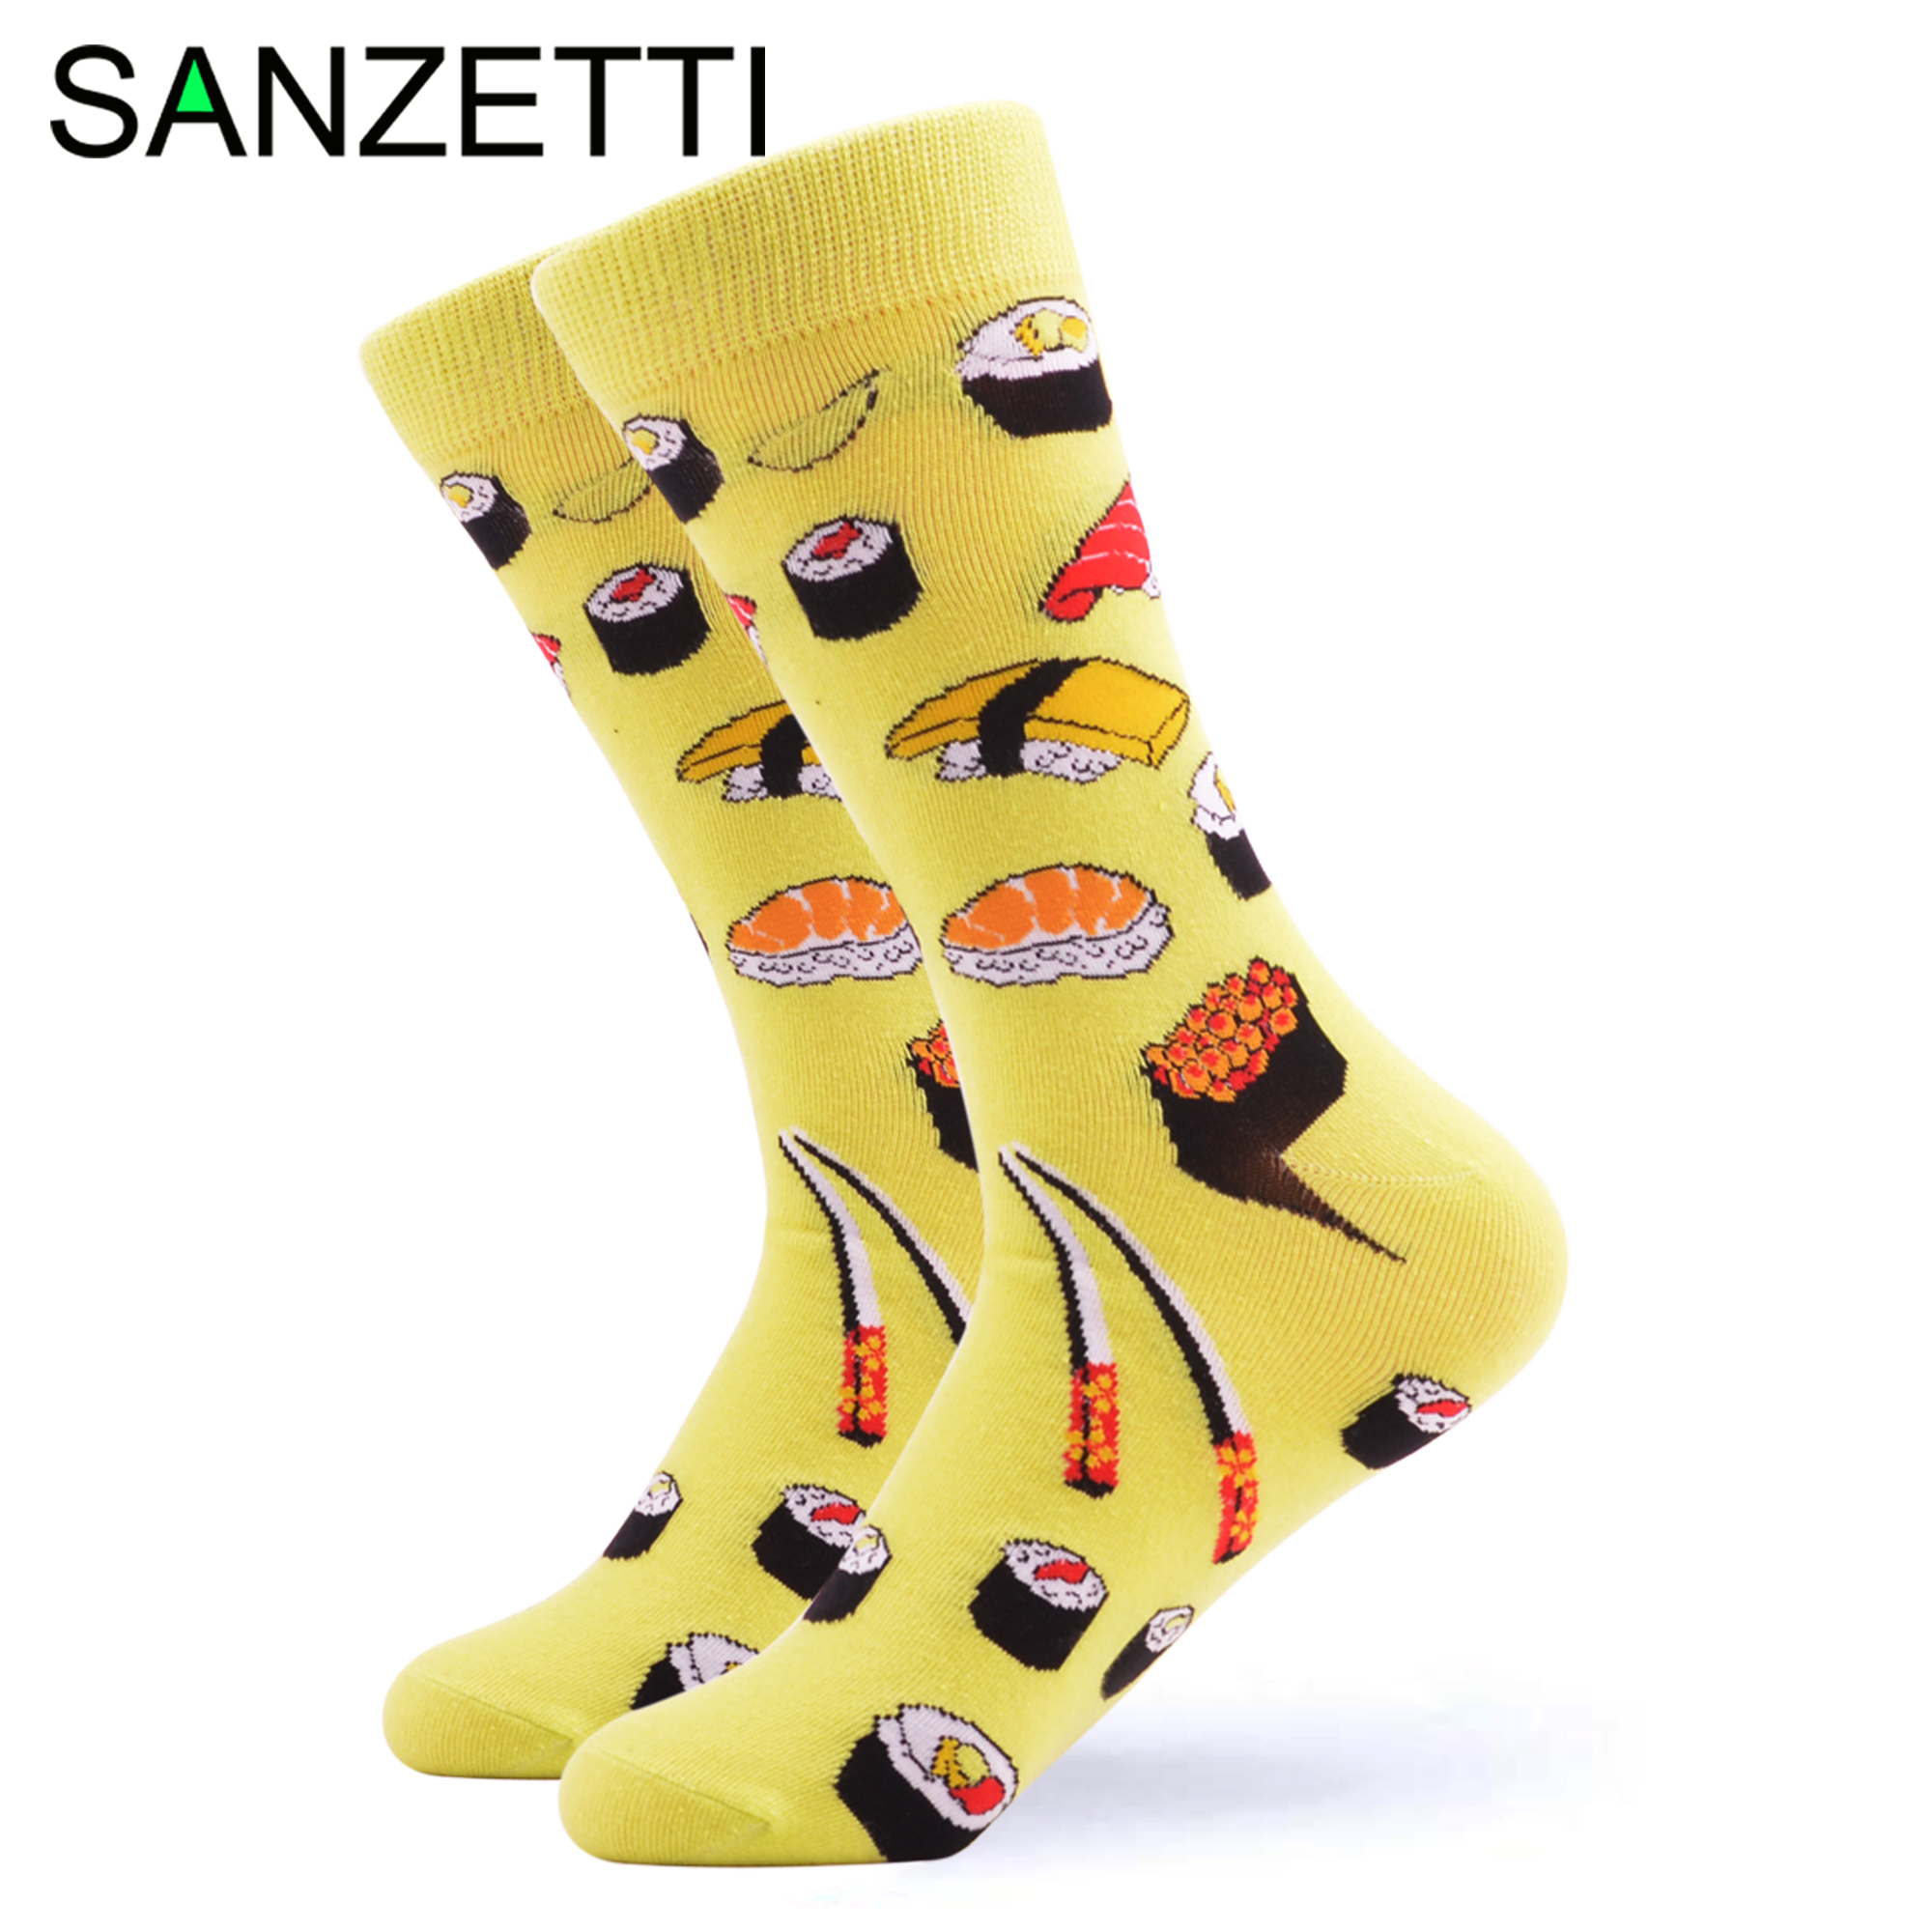 SANZETTI 1 Pair Happy Socks High Quality Gift Men's Colorful Comfortable Combed Cotton Funny Food Fruit Gift Wedding Dress Socks